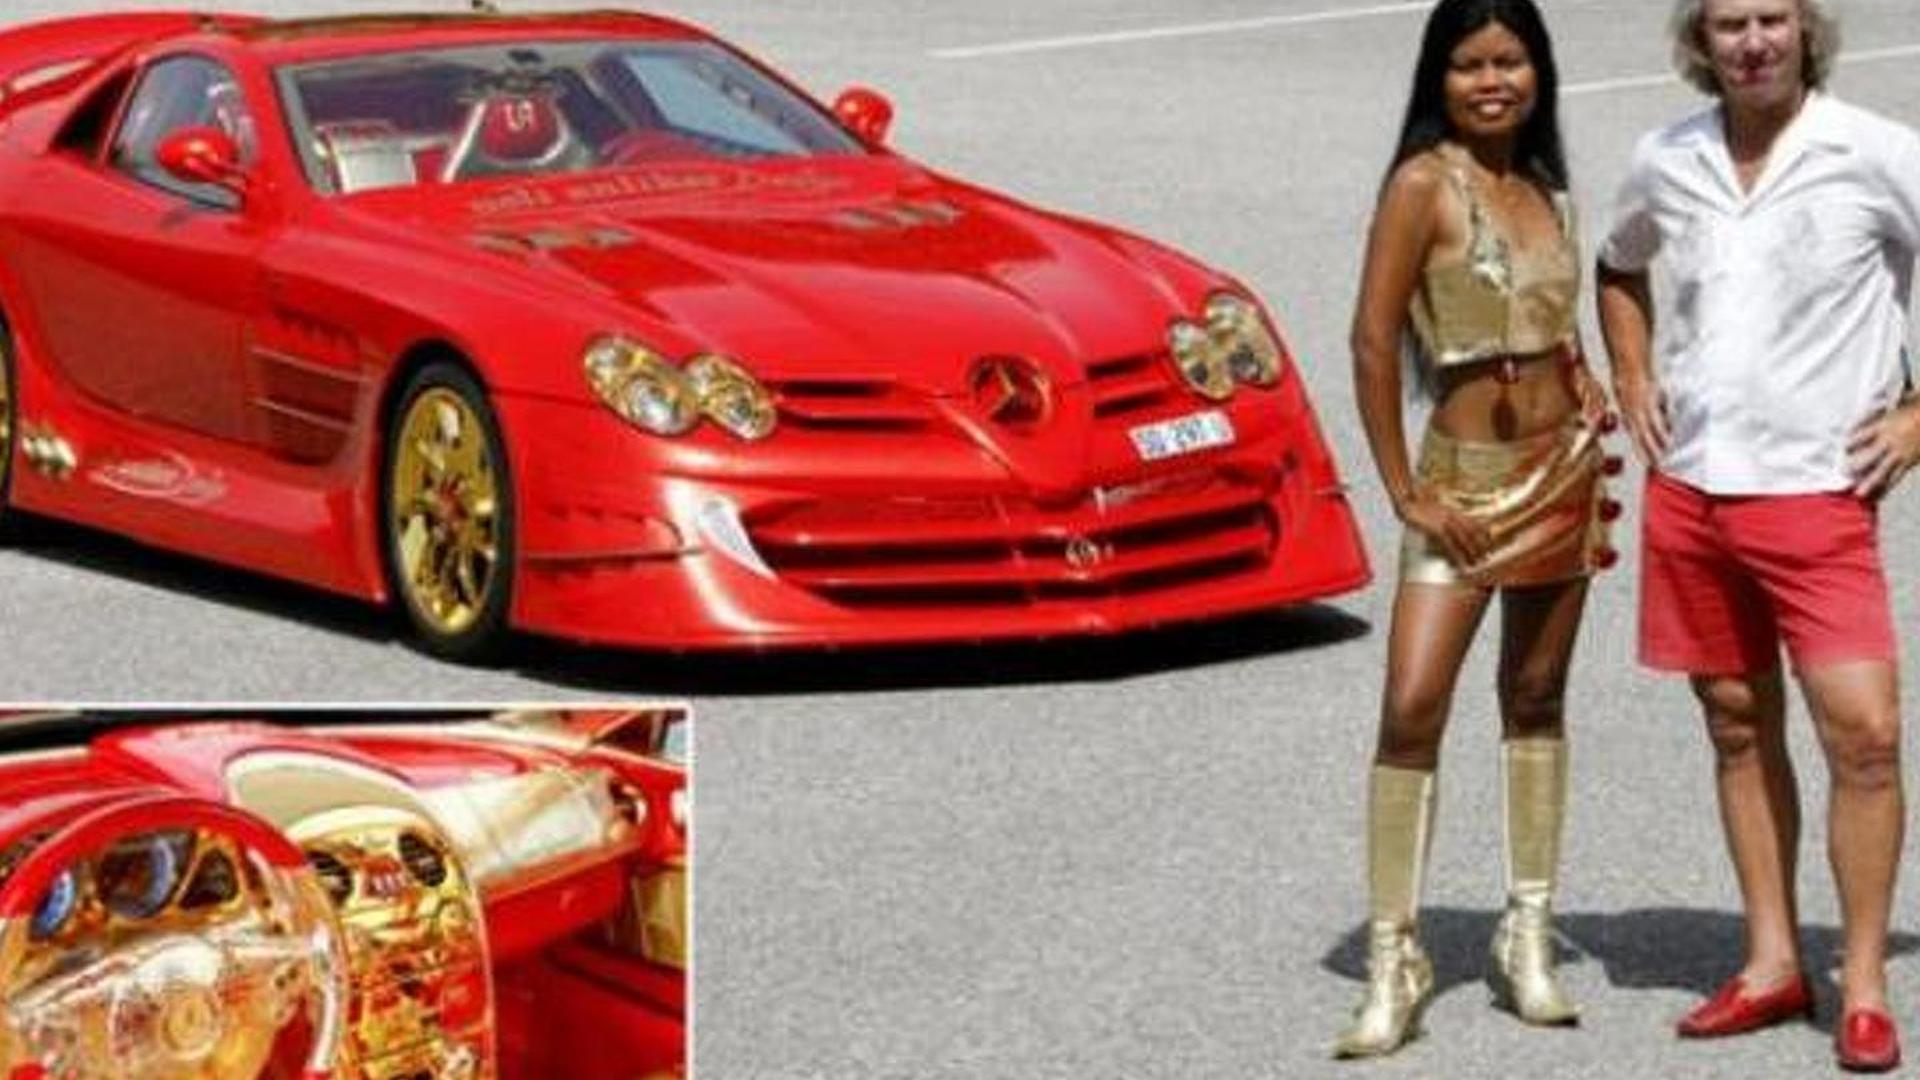 Gold covered 999bhp Mercedes McLaren SLR to sell for £7 million